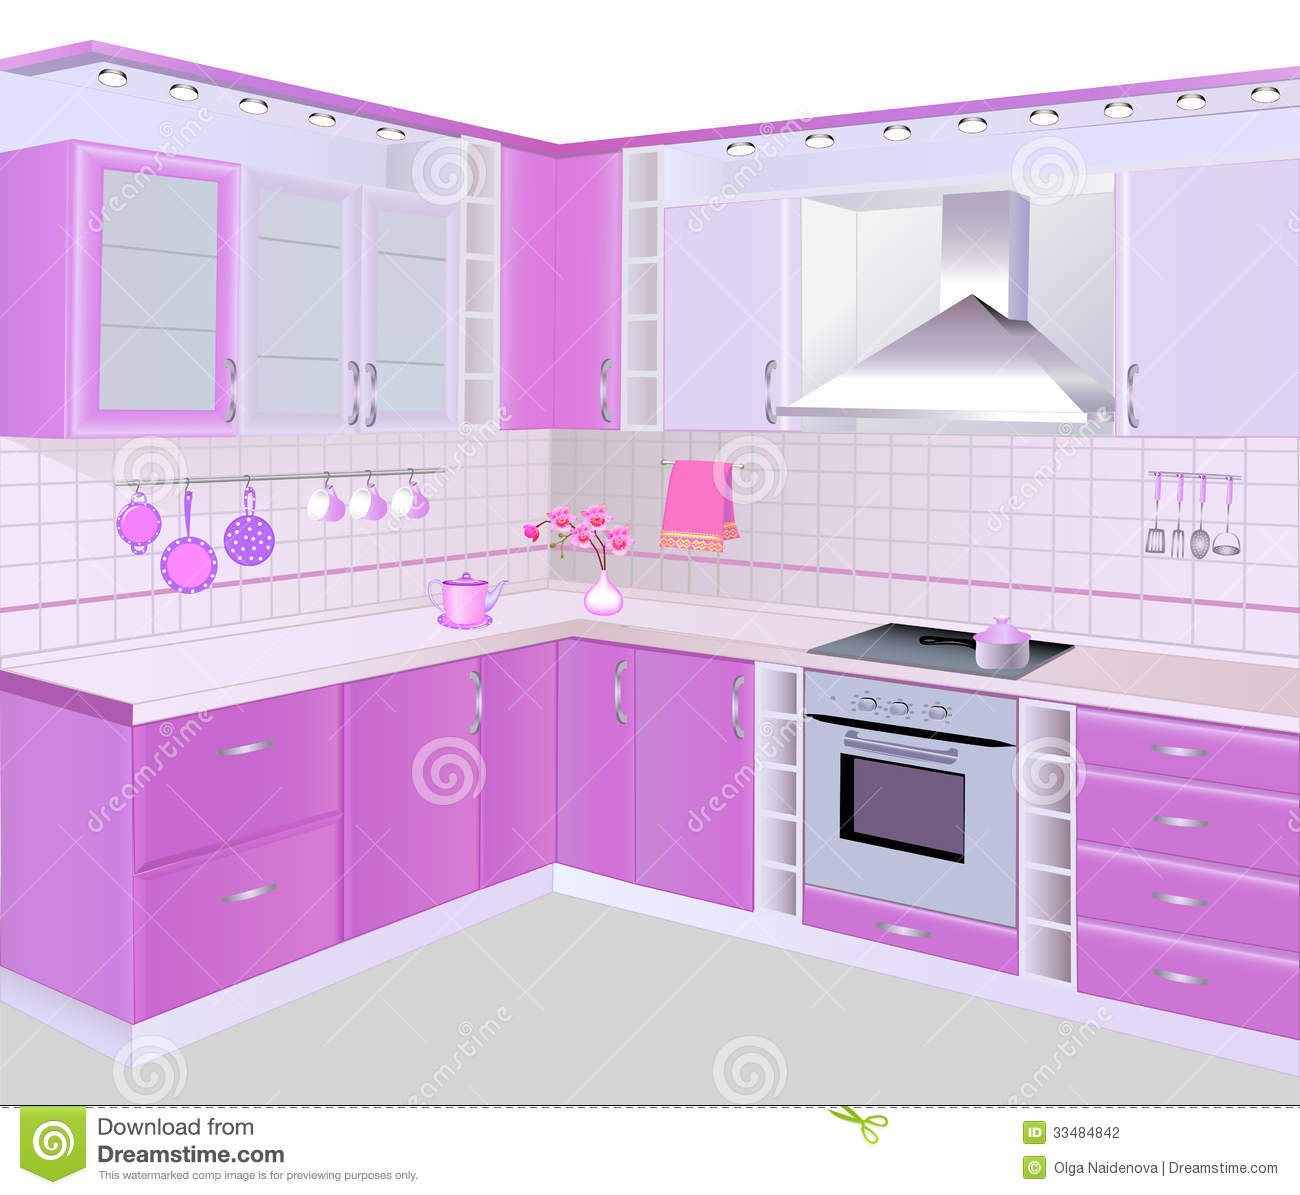 pink kitchen tiles kitchen interior with pink furniture and tiles stock 1503